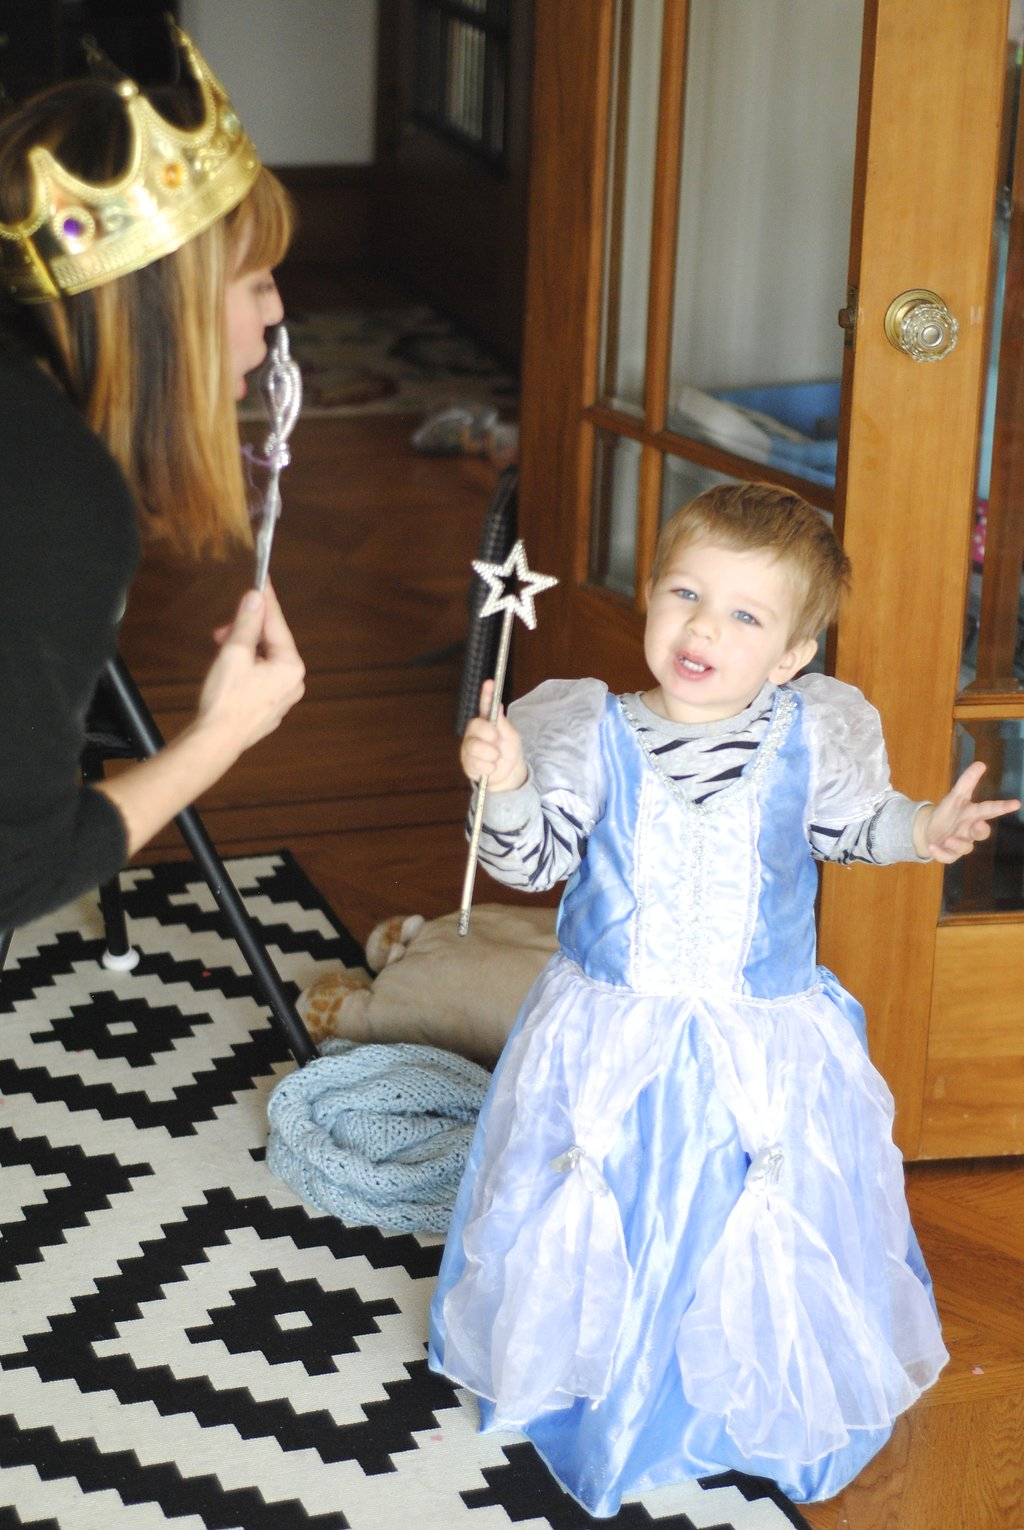 little boy dressed up as princess and dancing